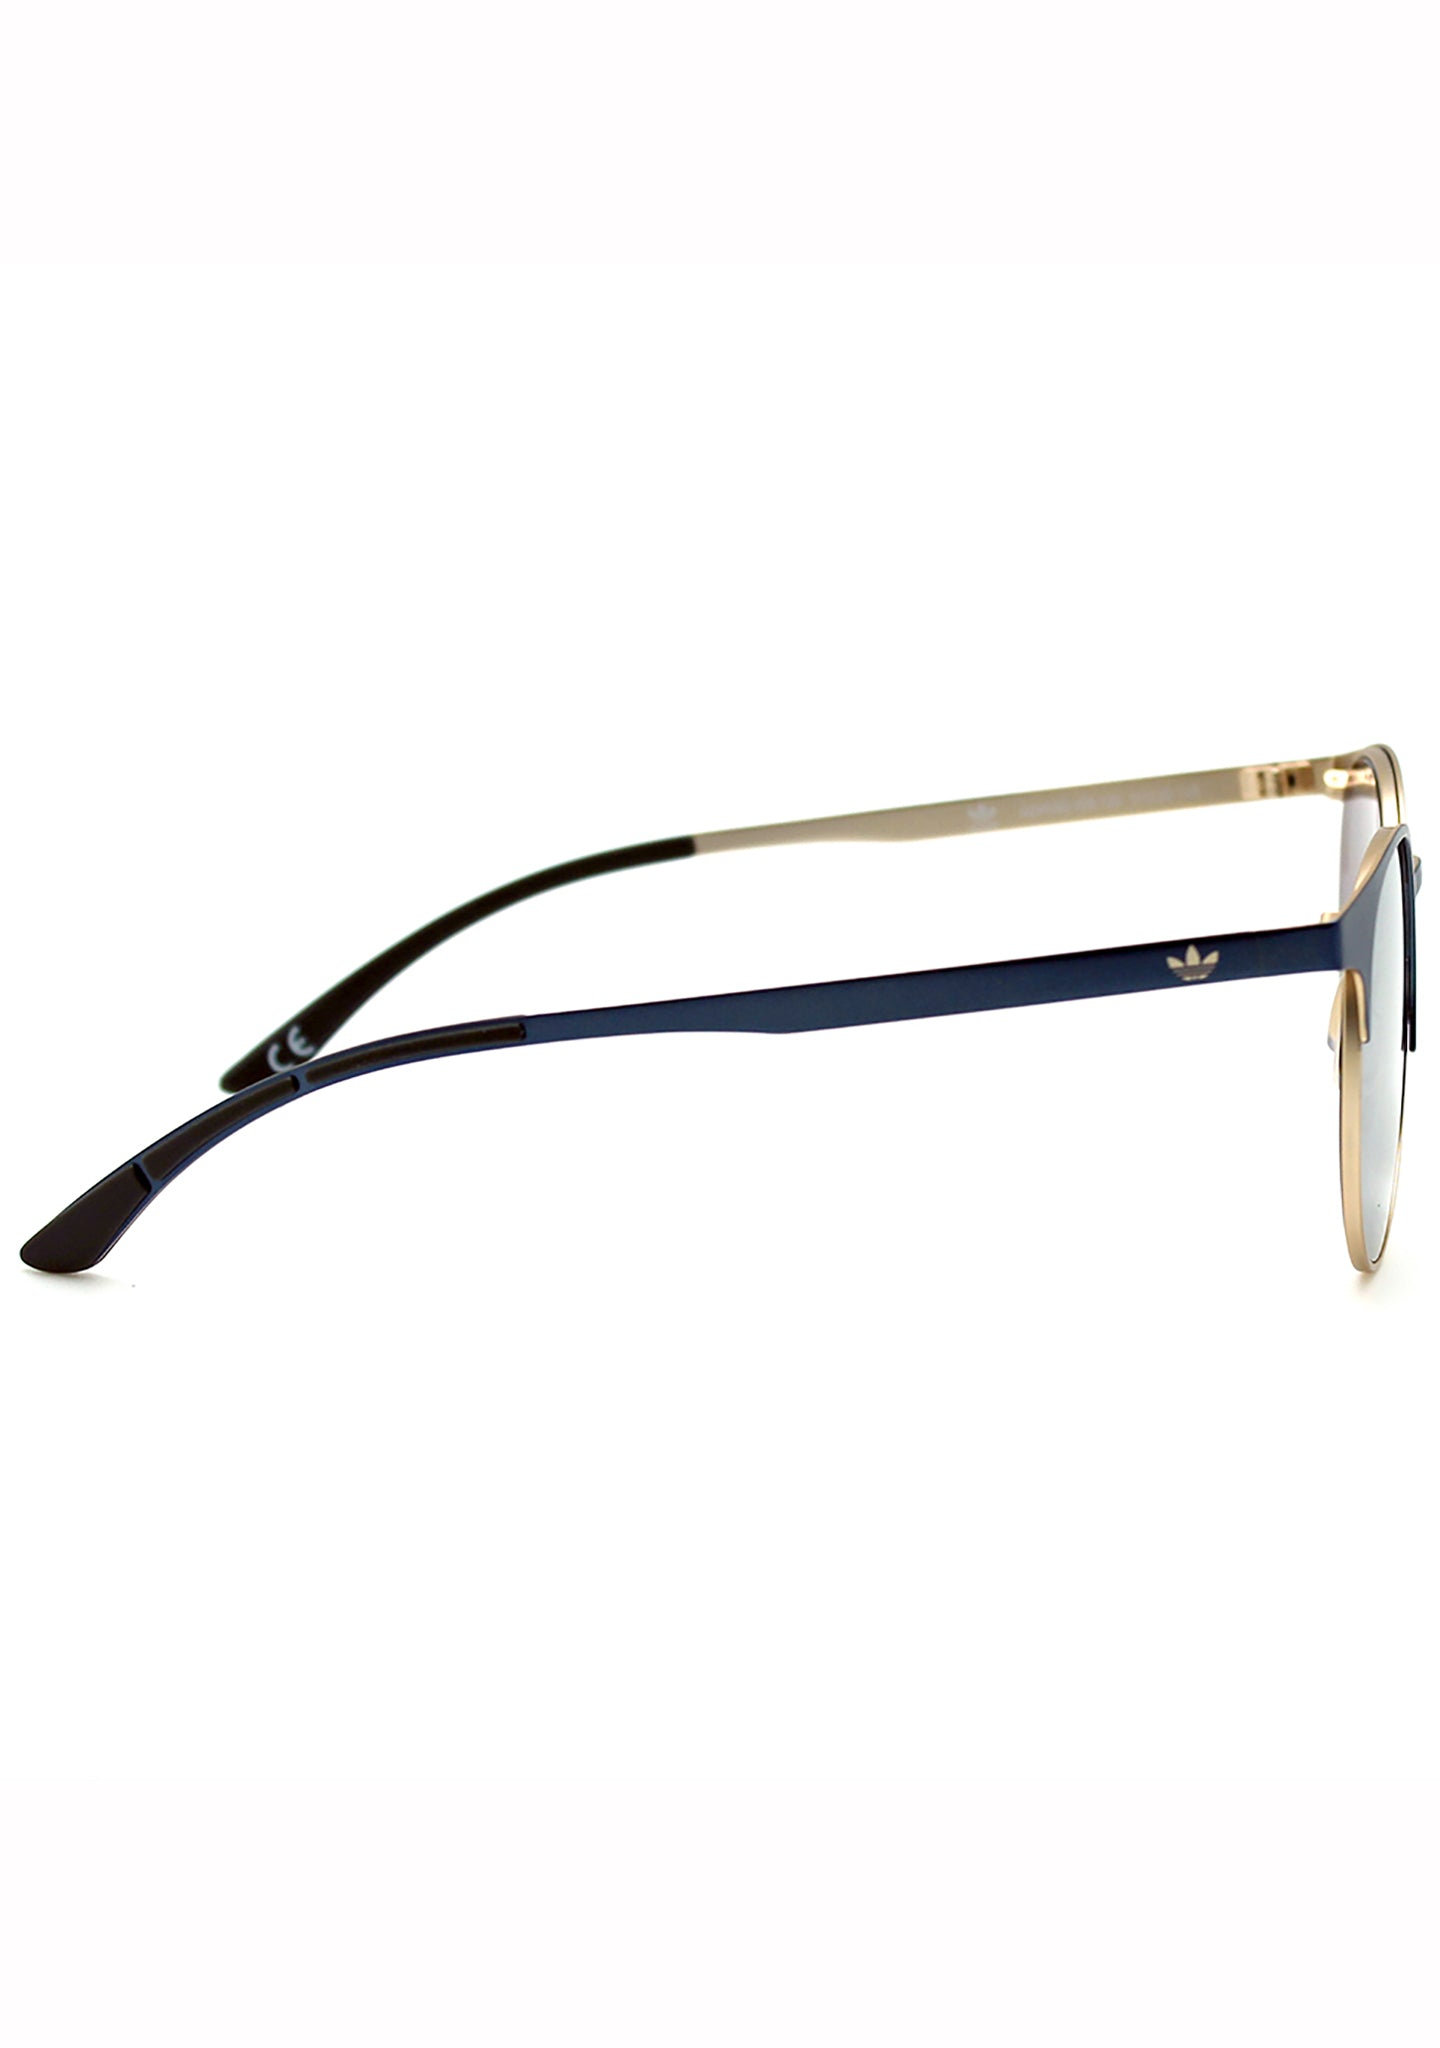 Adidas Originals Oval Metal Series Sunglasses in Blue/Gold